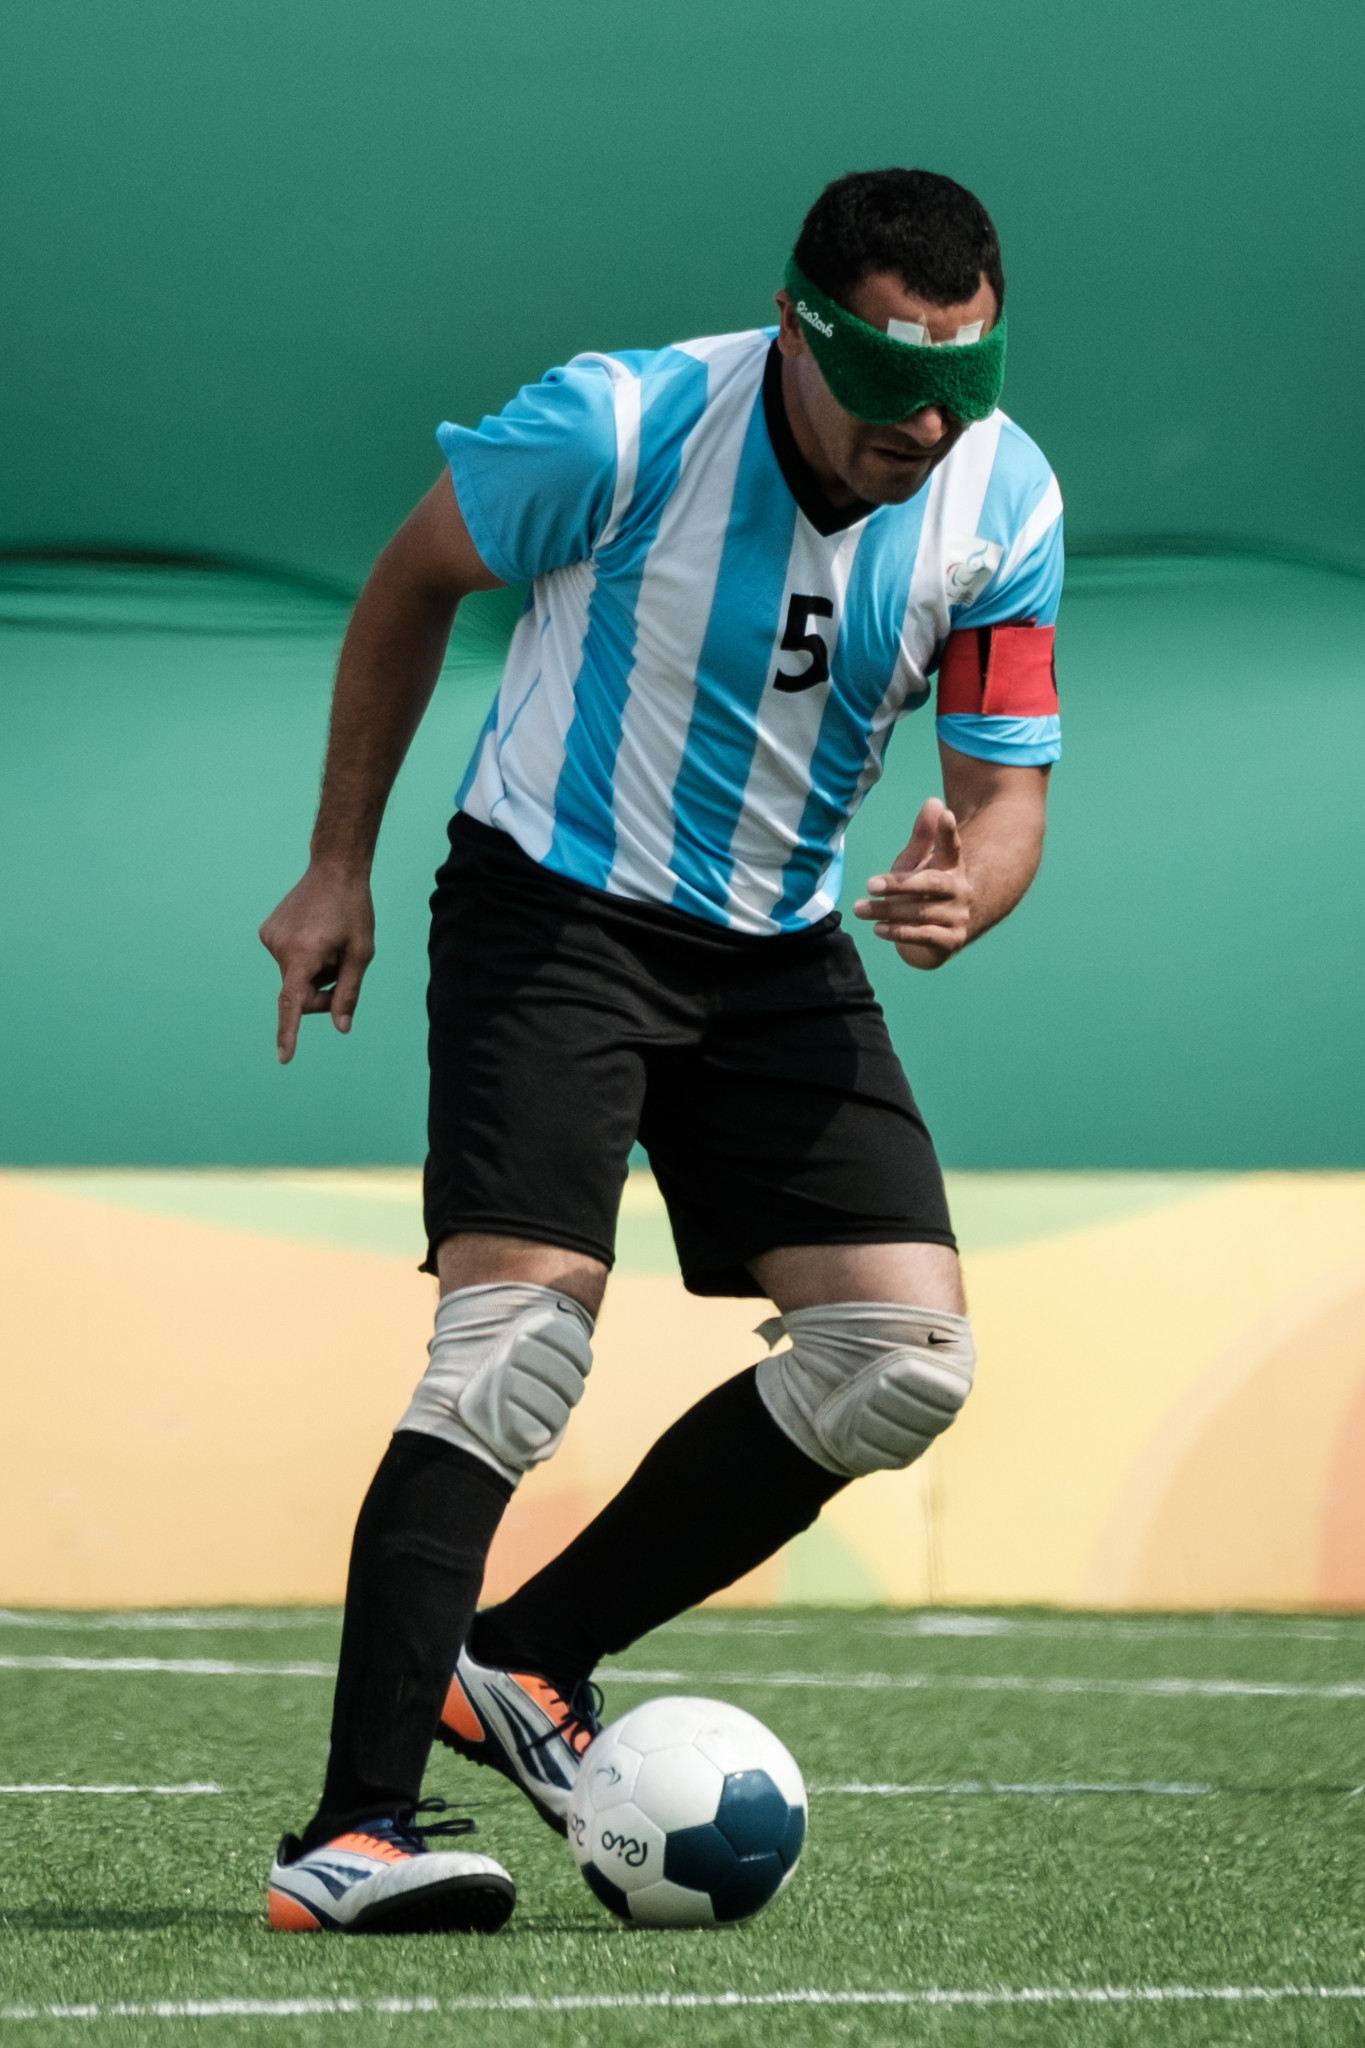 Argentinean blind footballer Silvio Velo is in contention for the December prize ©Getty Images